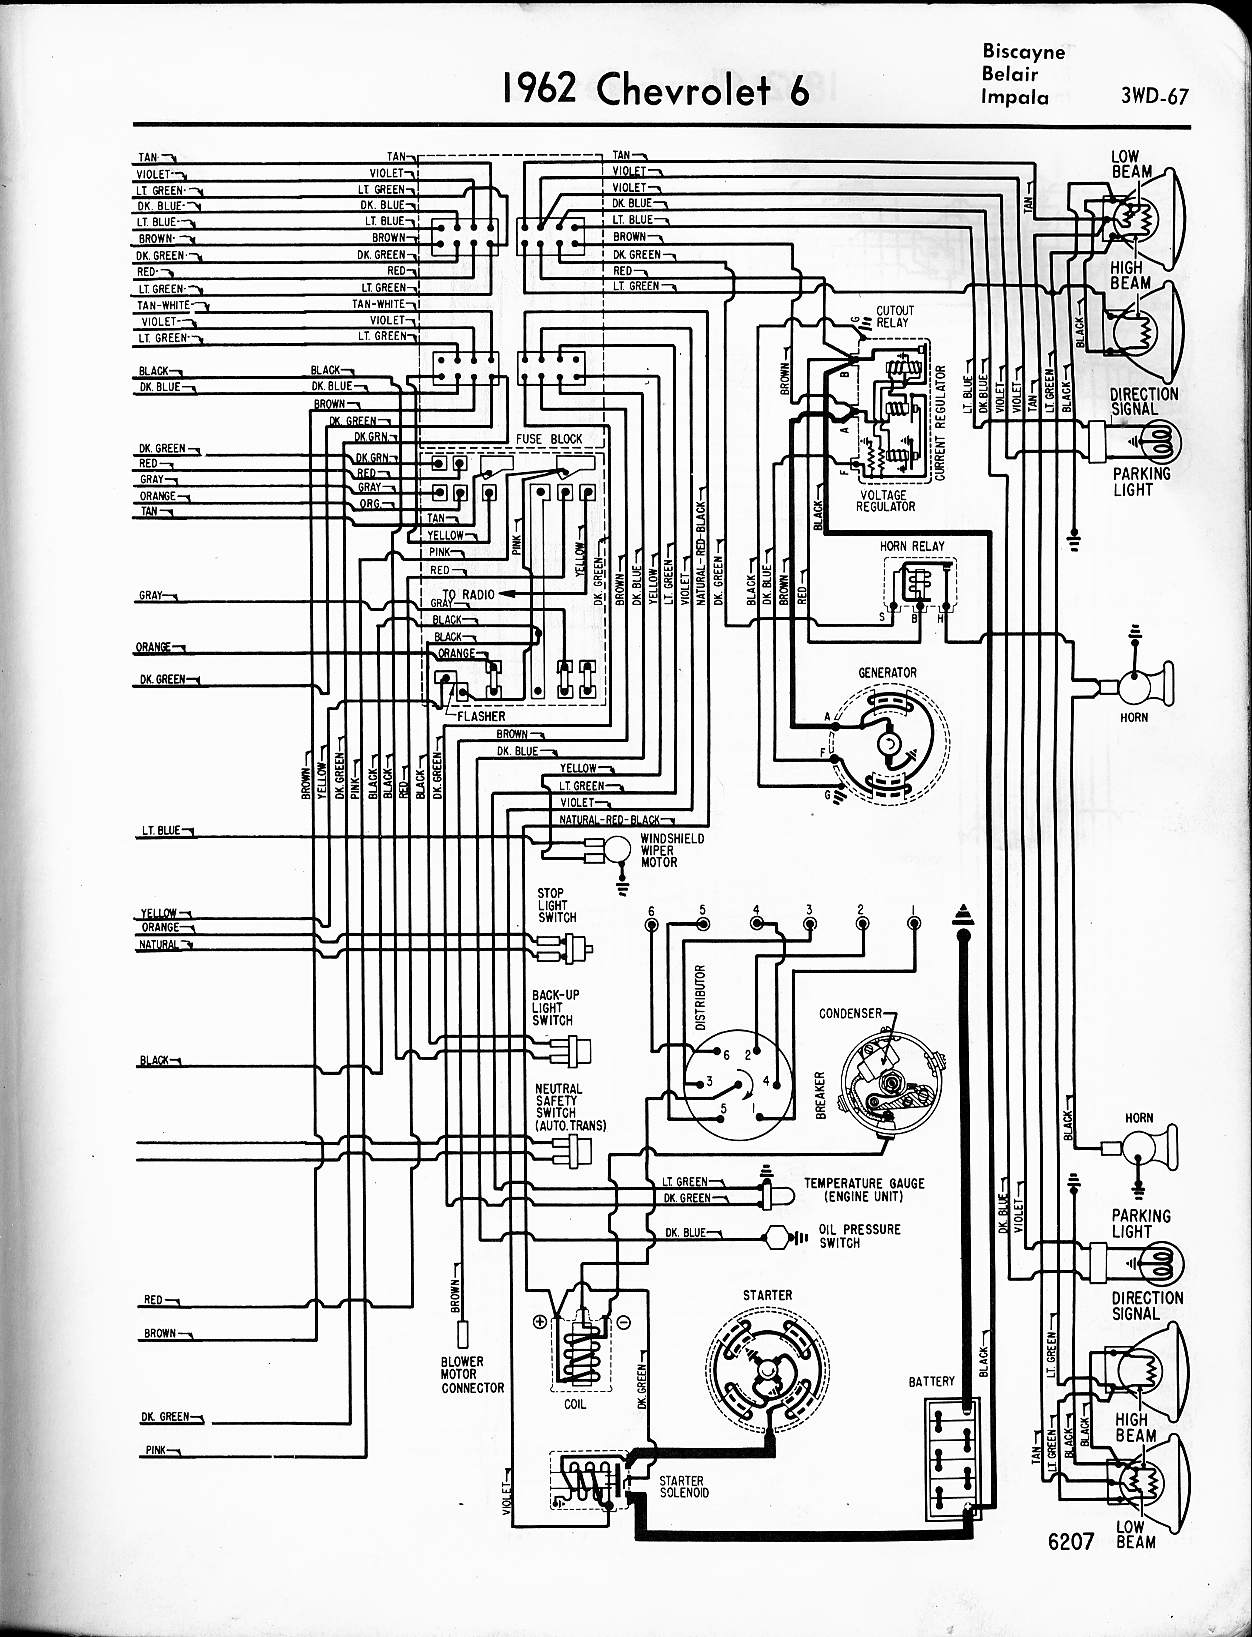 Nissan Champ Wiring Diagram